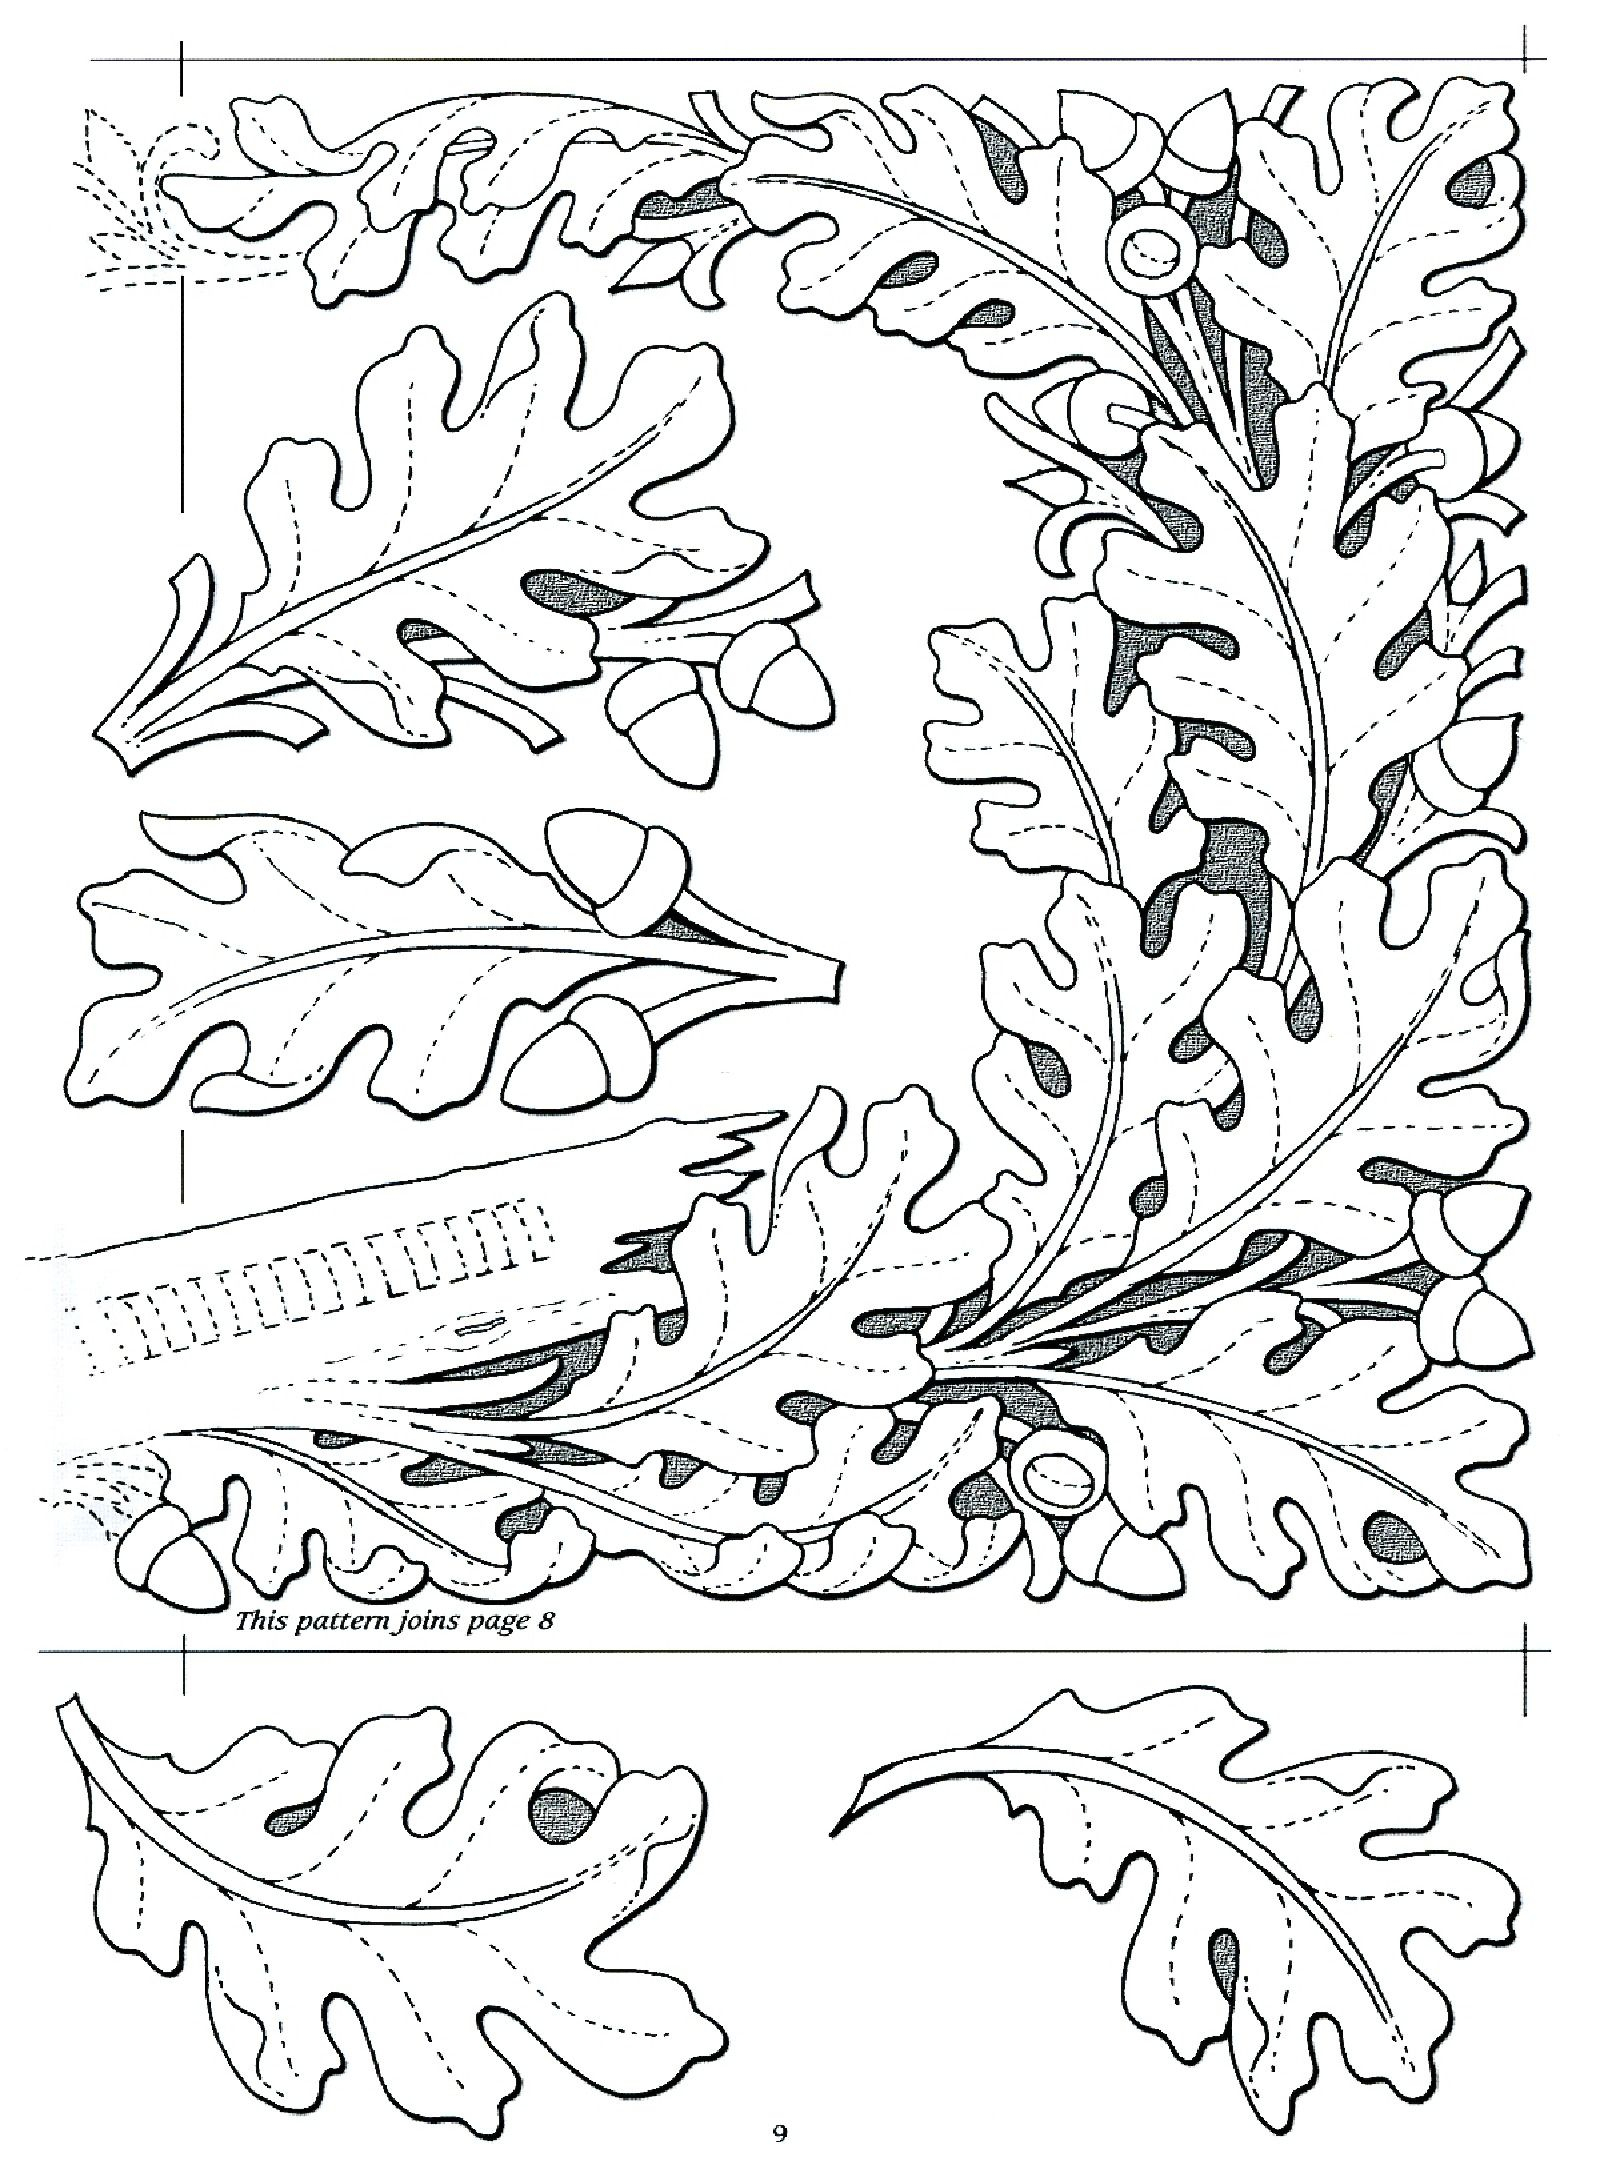 Oak Leaf Design … | Diy And Crafts | Pinte… - Free Printable Oak Leaf Patterns